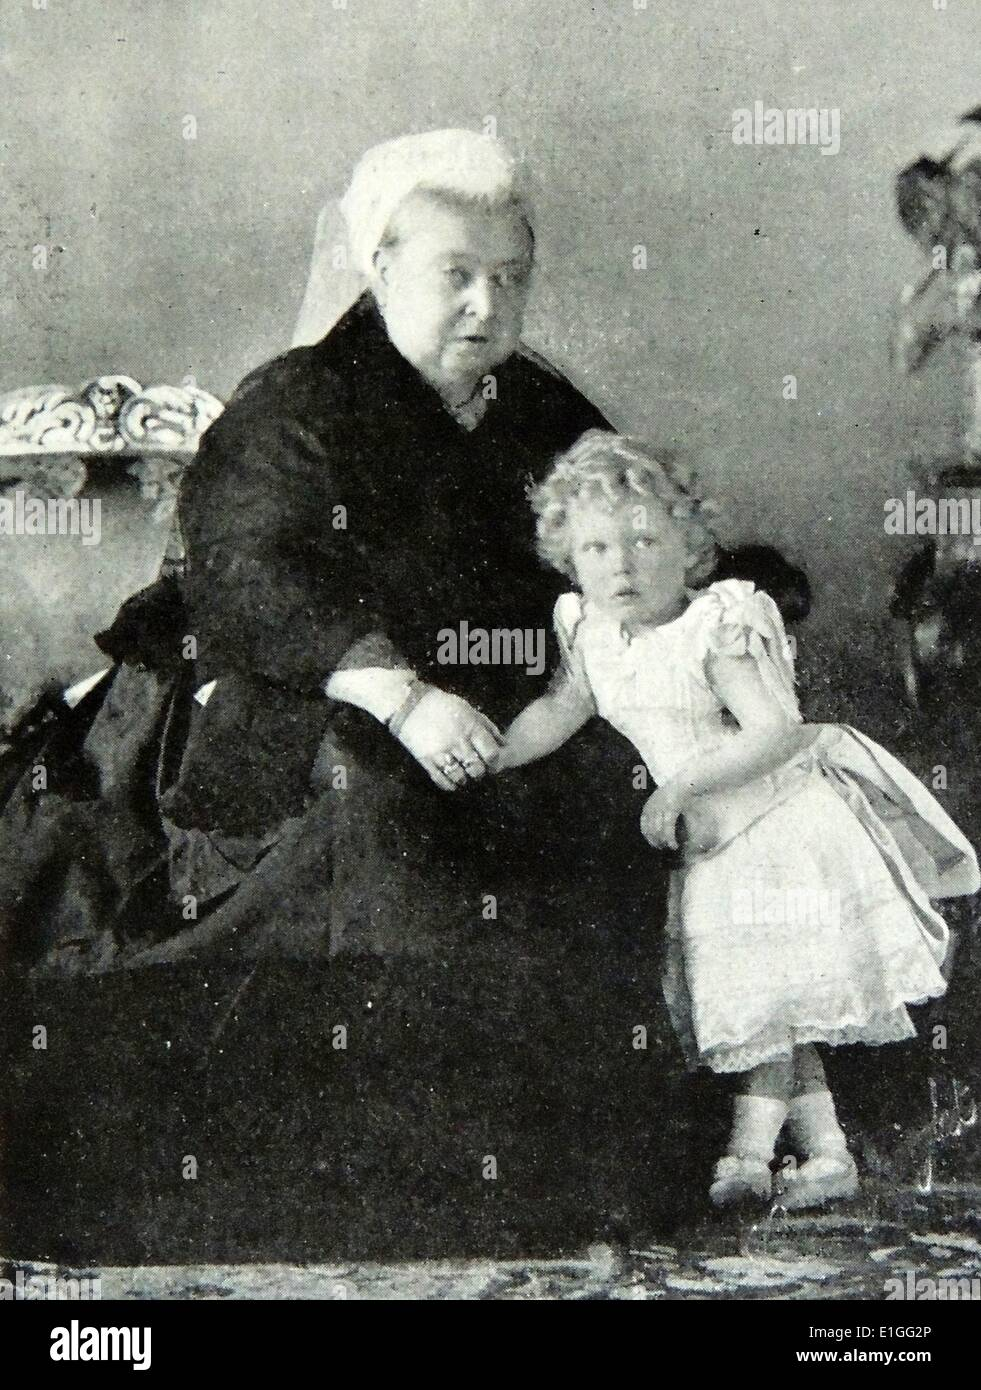 Queen Victoria and Grandchild - Stock Image